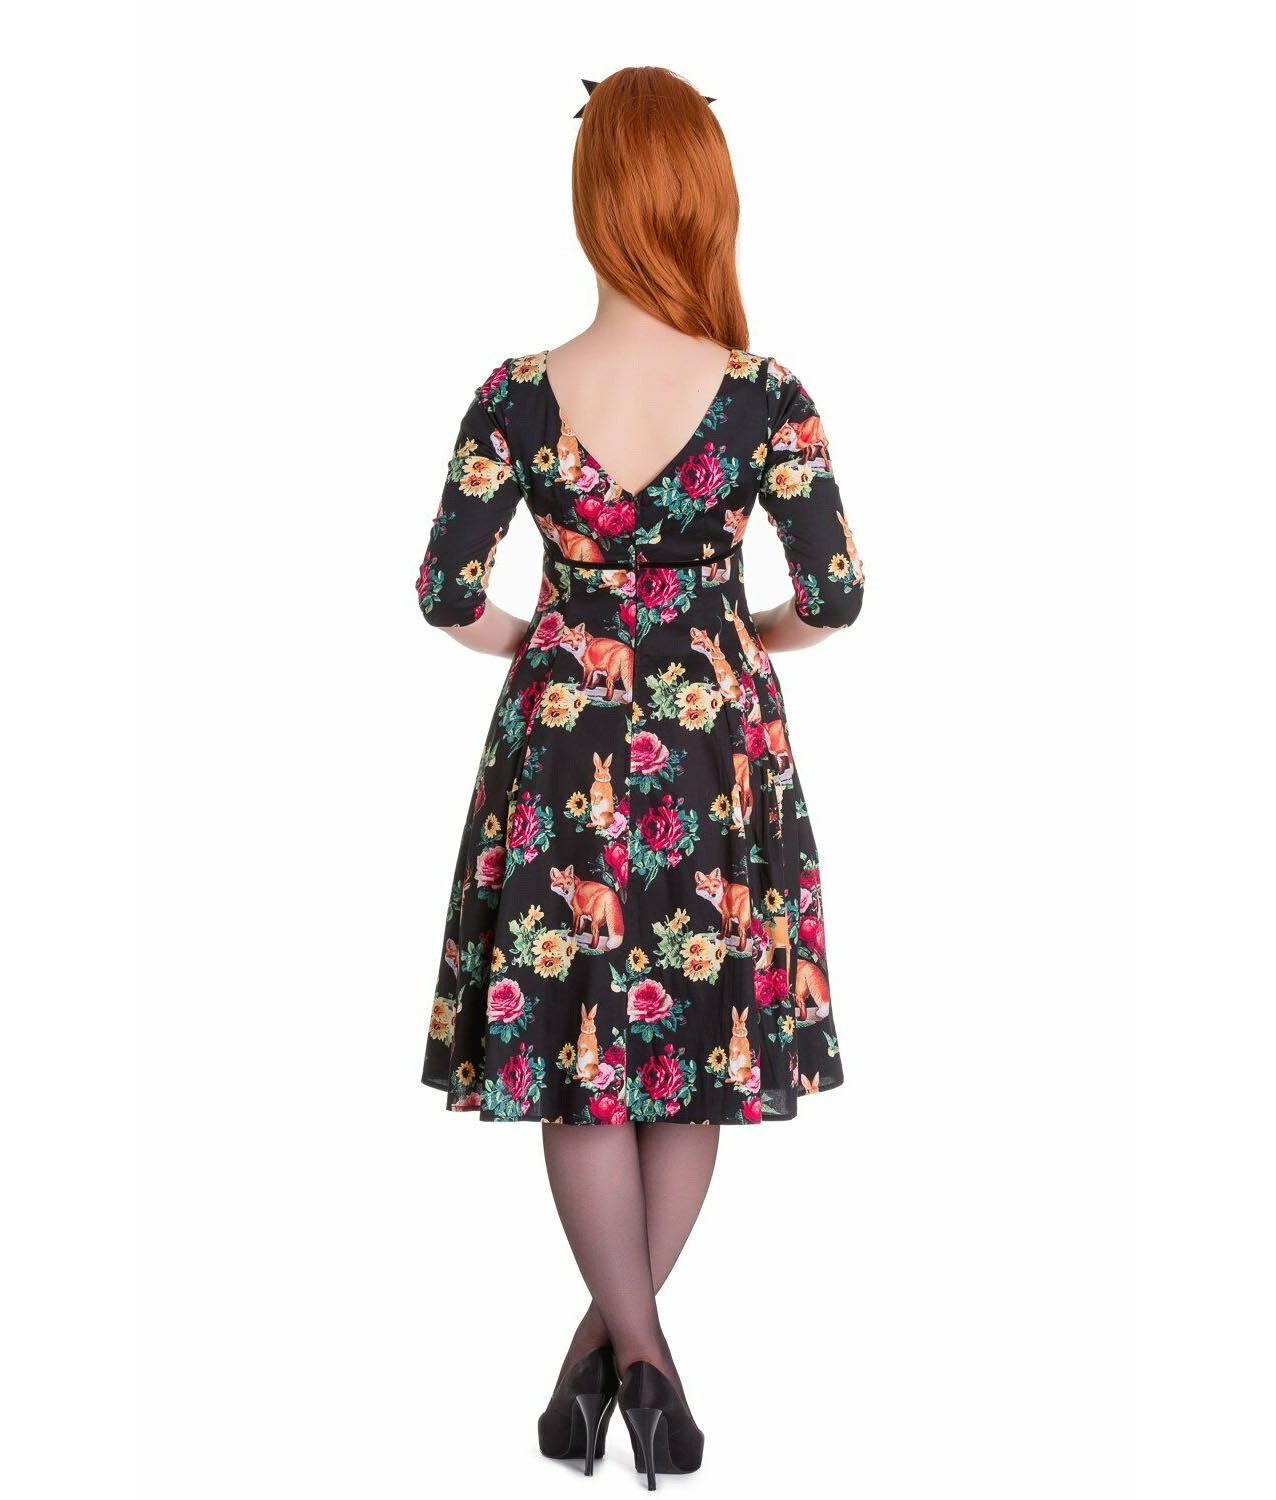 Hell-Bunny-40s-50s-Pin-Up-Vintage-Dress-HERMELINE-Woodland-Fox-All-Sizes thumbnail 13